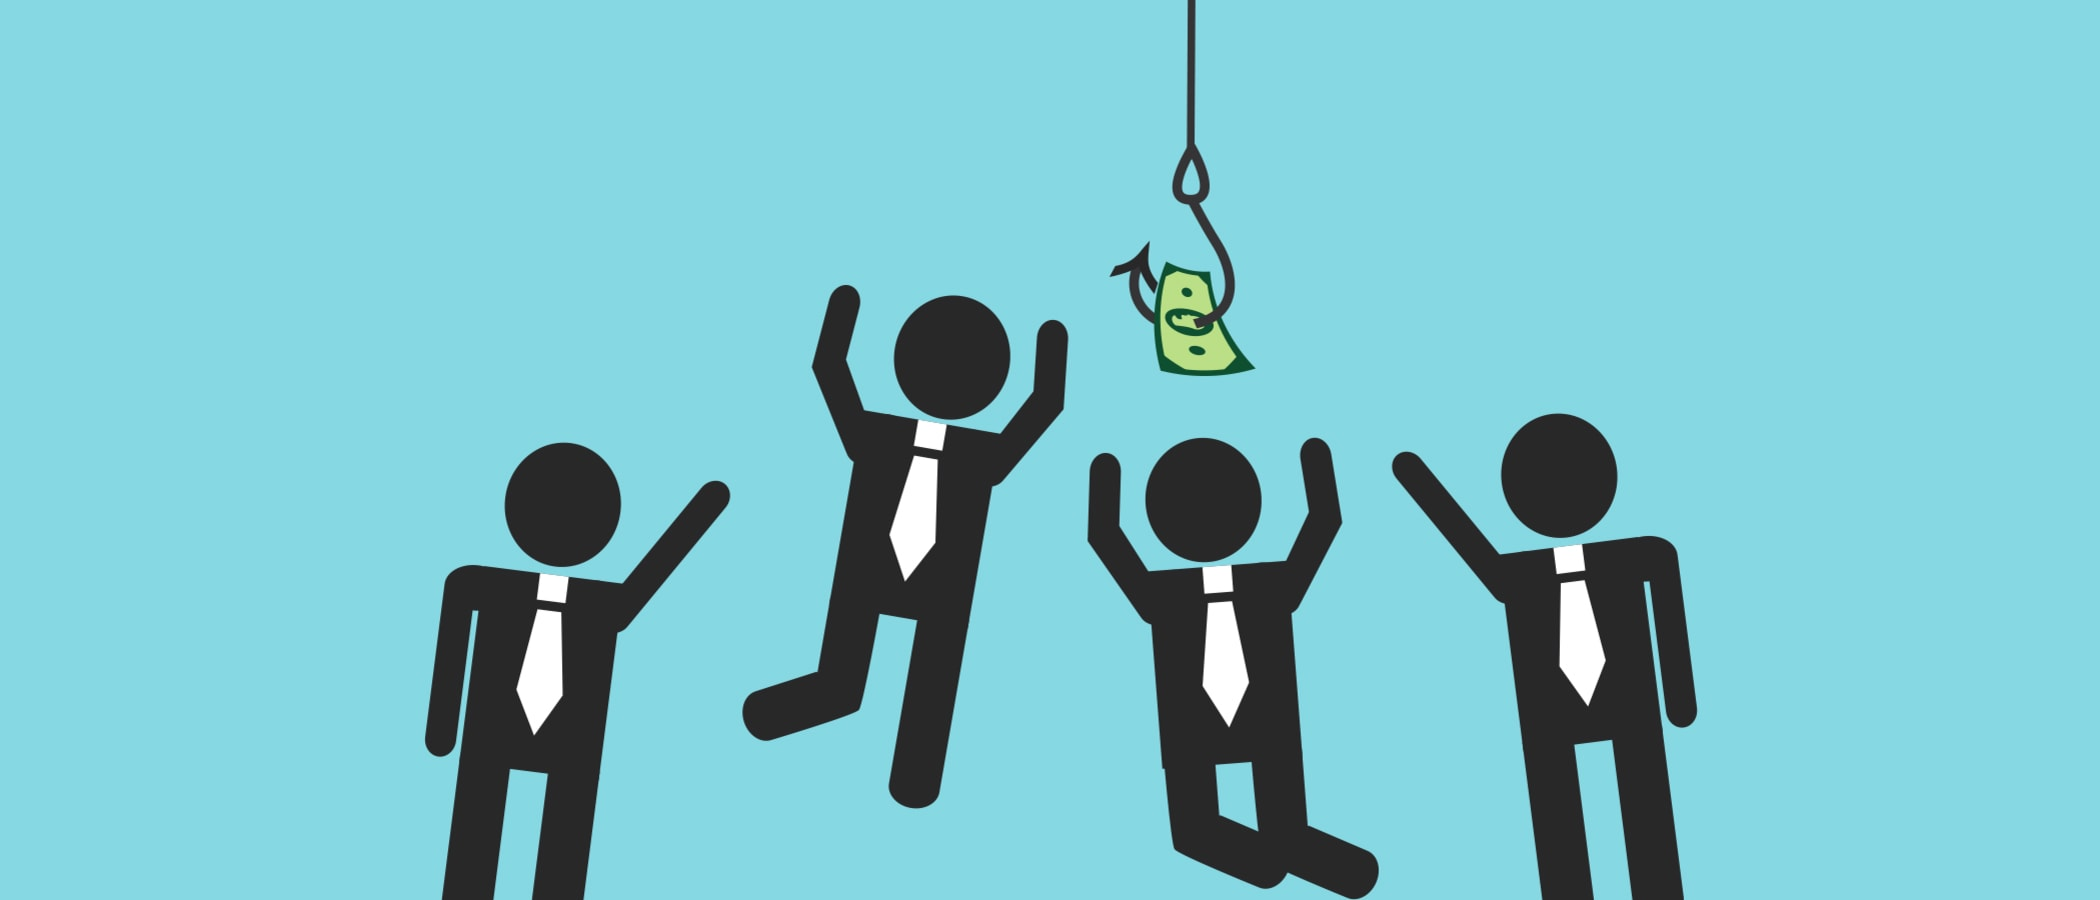 Some Companies Boost Starting Salaries, But Getting a Raise Is Hard